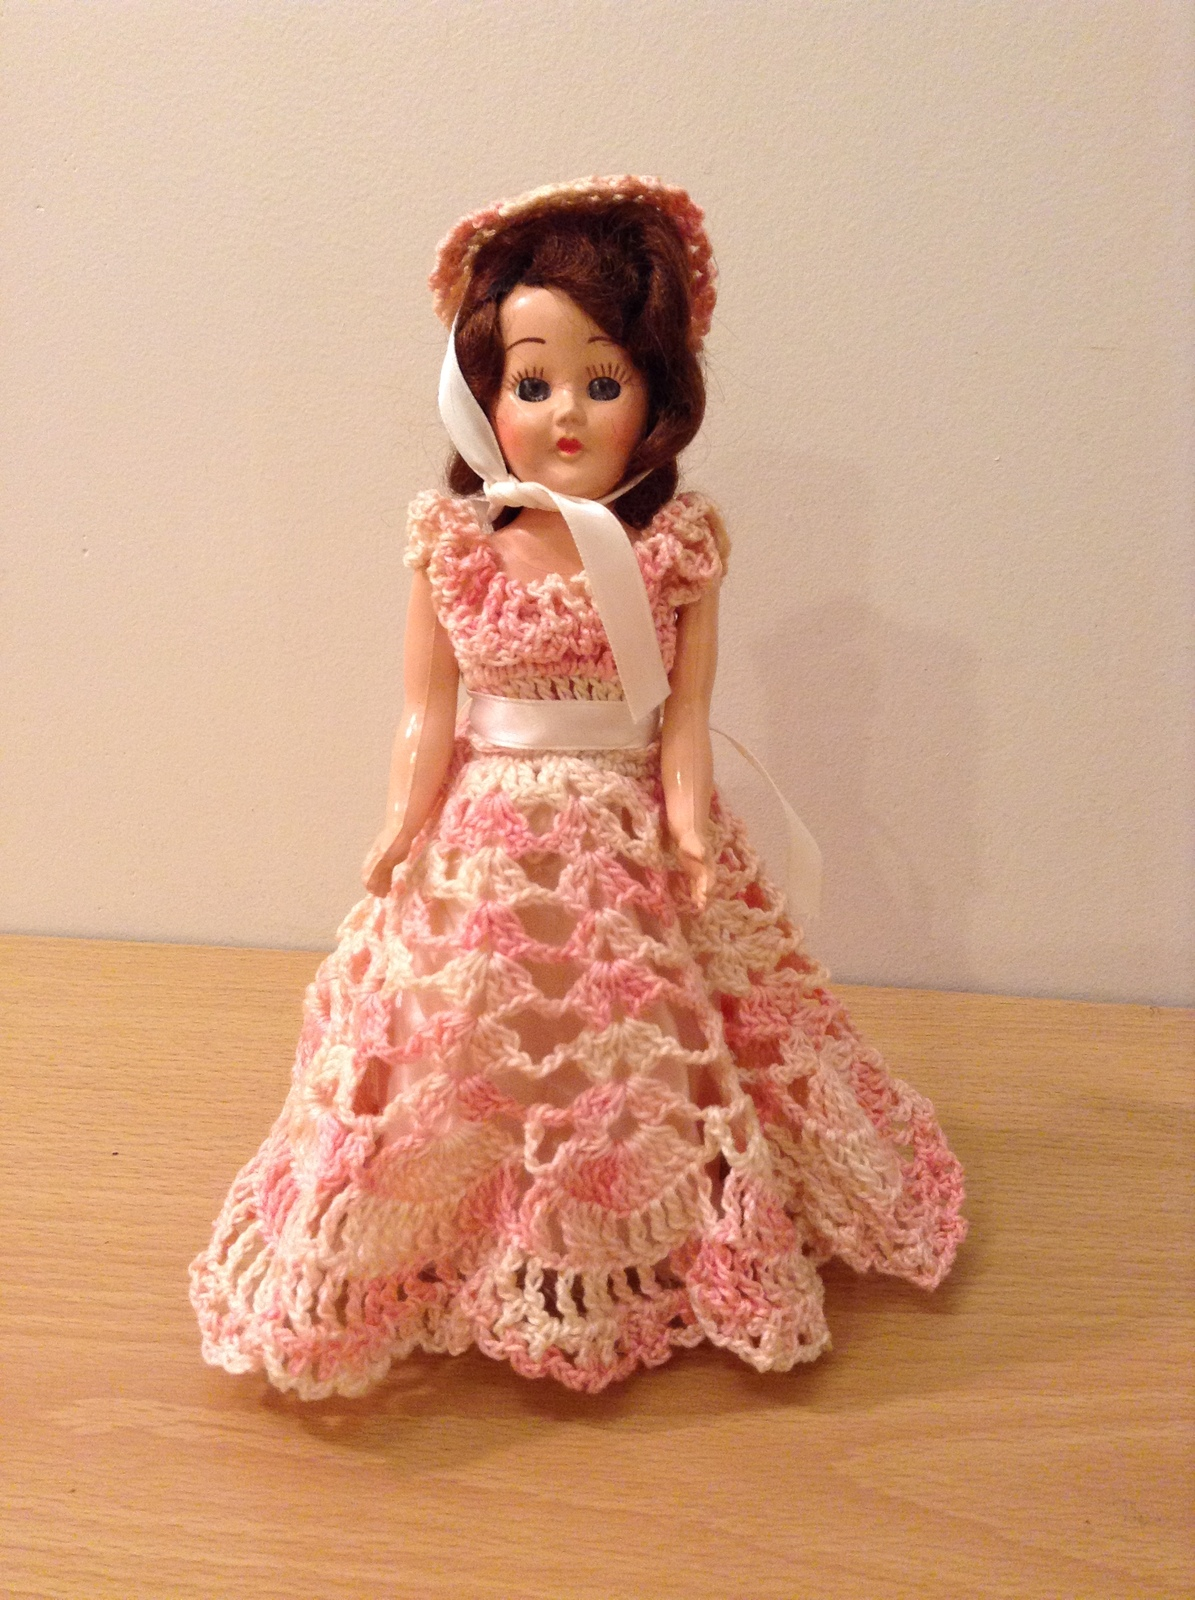 Vintage Collectible Doll with Automatic Closing Eyes Handmade Crochet Clothing